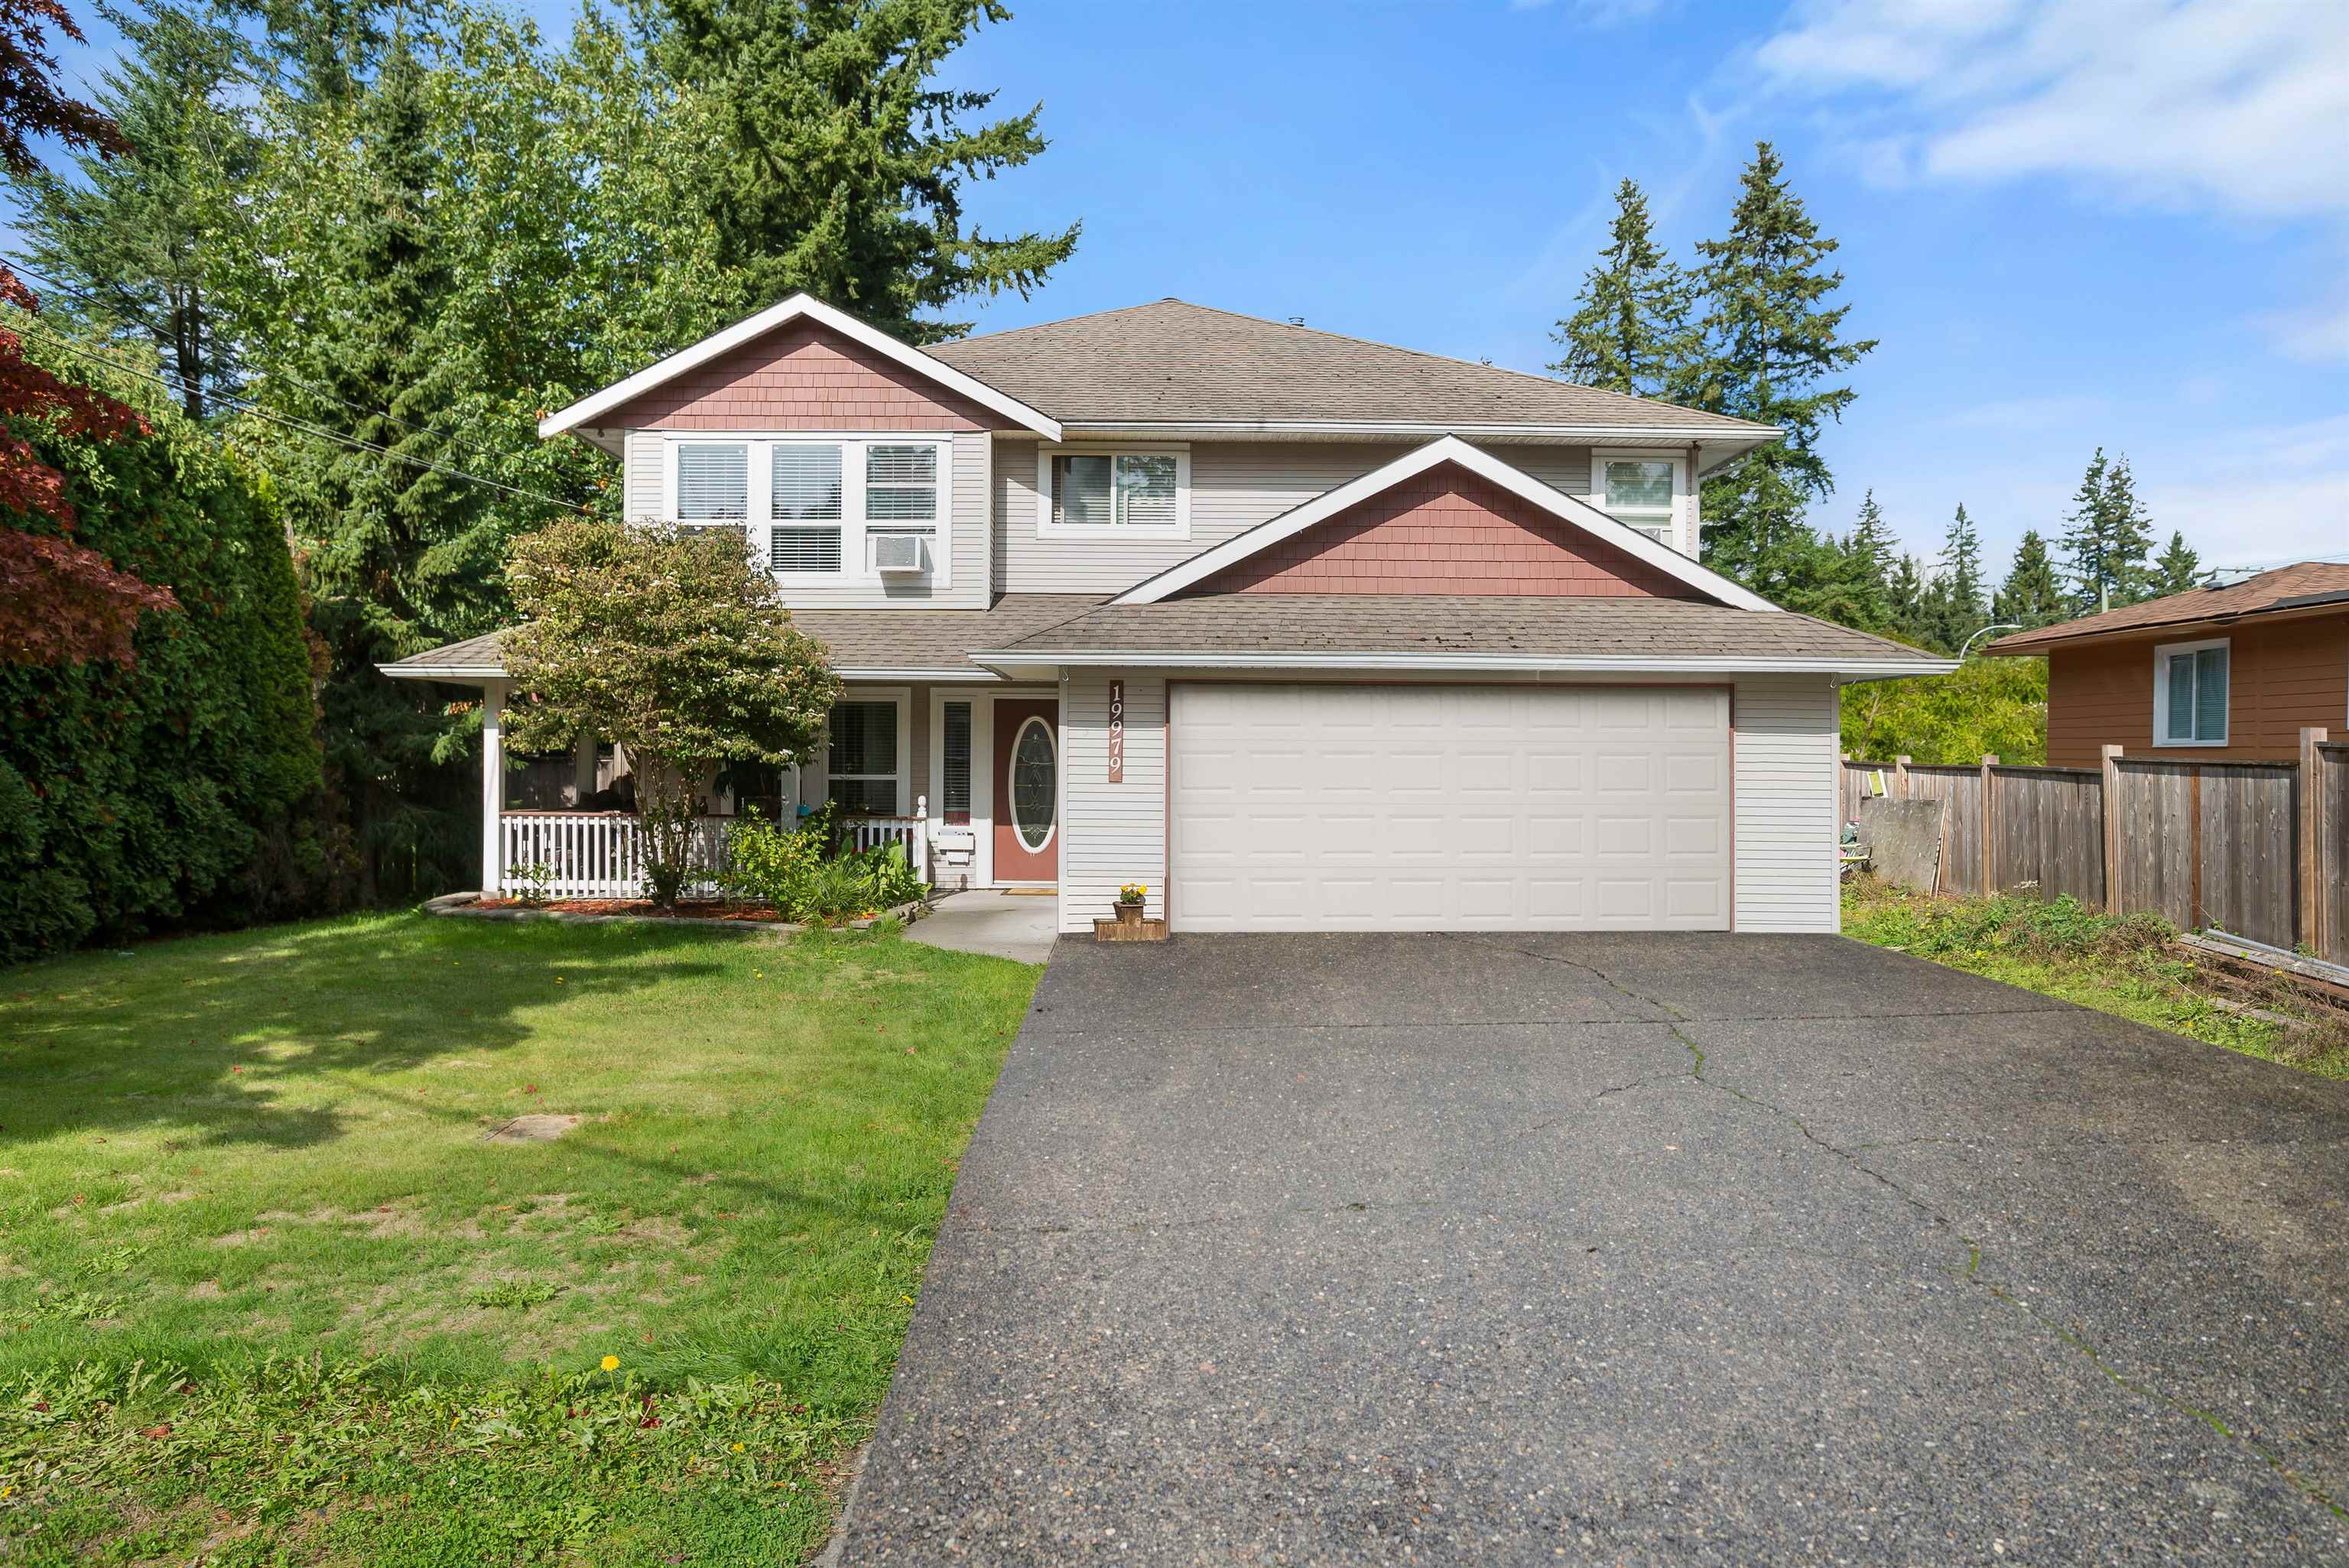 19979 36A AVENUE - Brookswood Langley House/Single Family for sale, 5 Bedrooms (R2623420) - #1